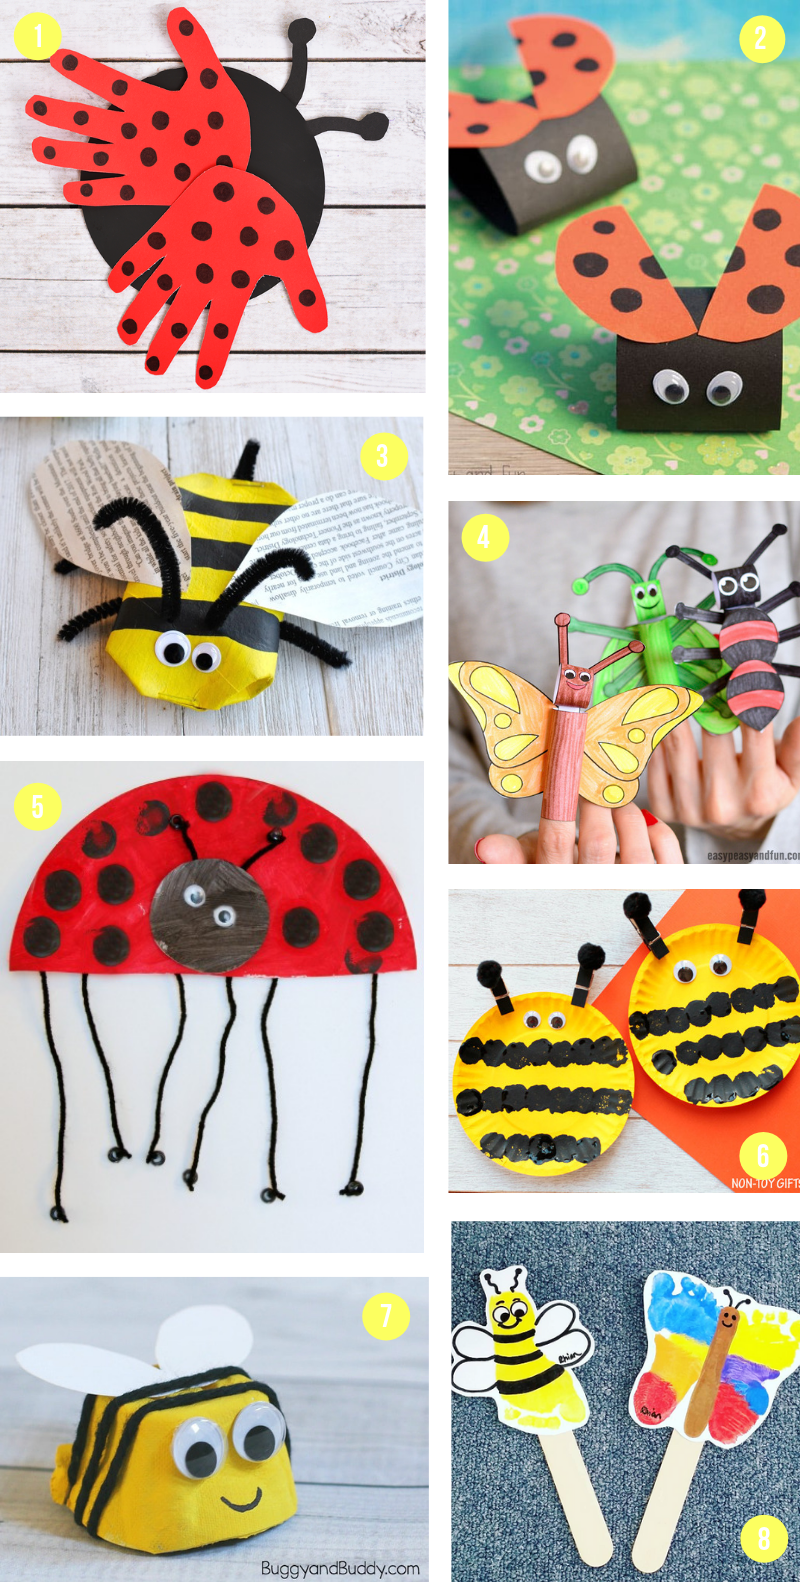 16 diy projects For Mom kids ideas